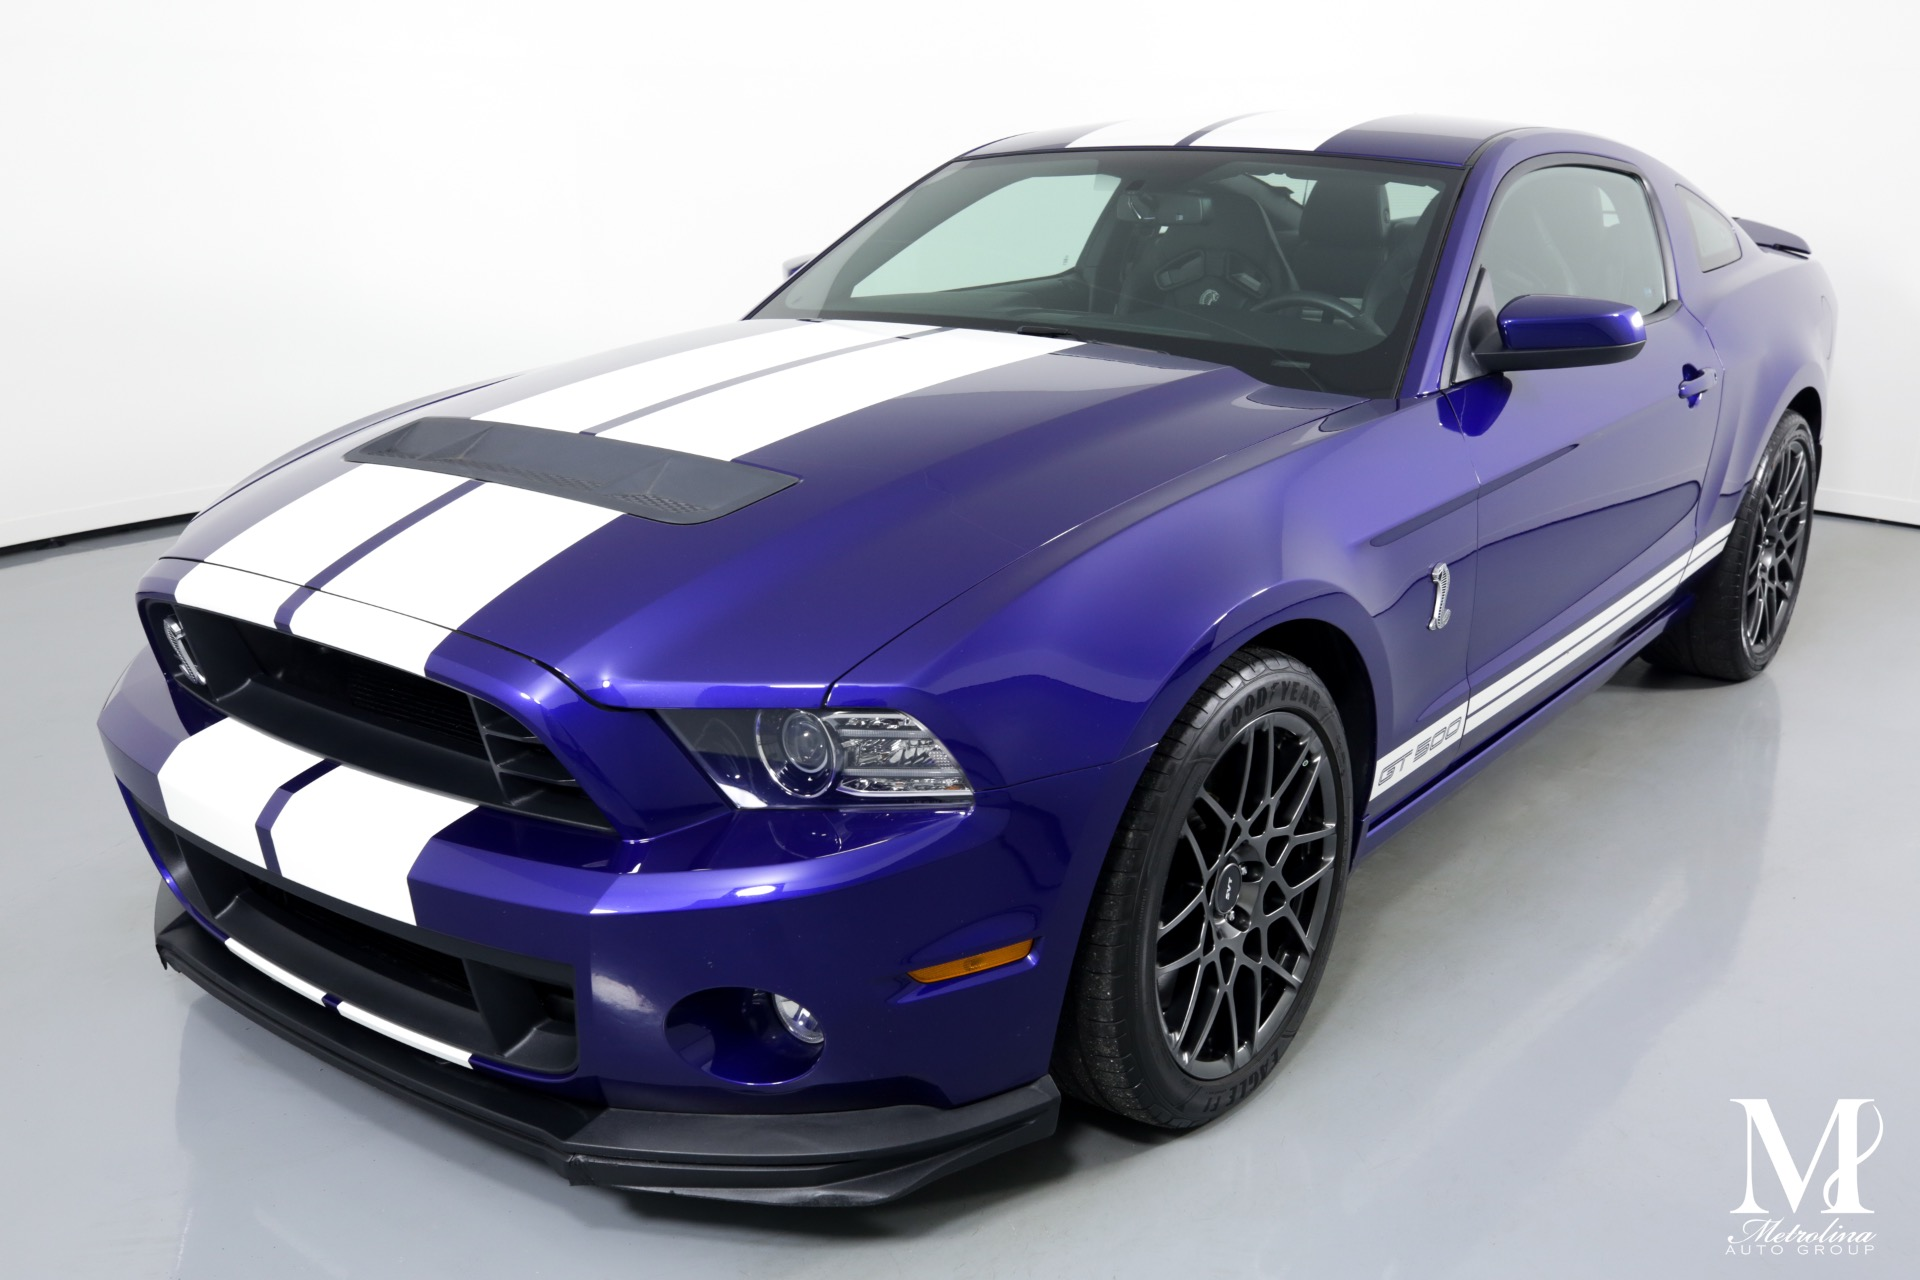 Used 2014 Ford Shelby GT500 for sale Sold at Metrolina Auto Group in Charlotte NC 28217 - 4